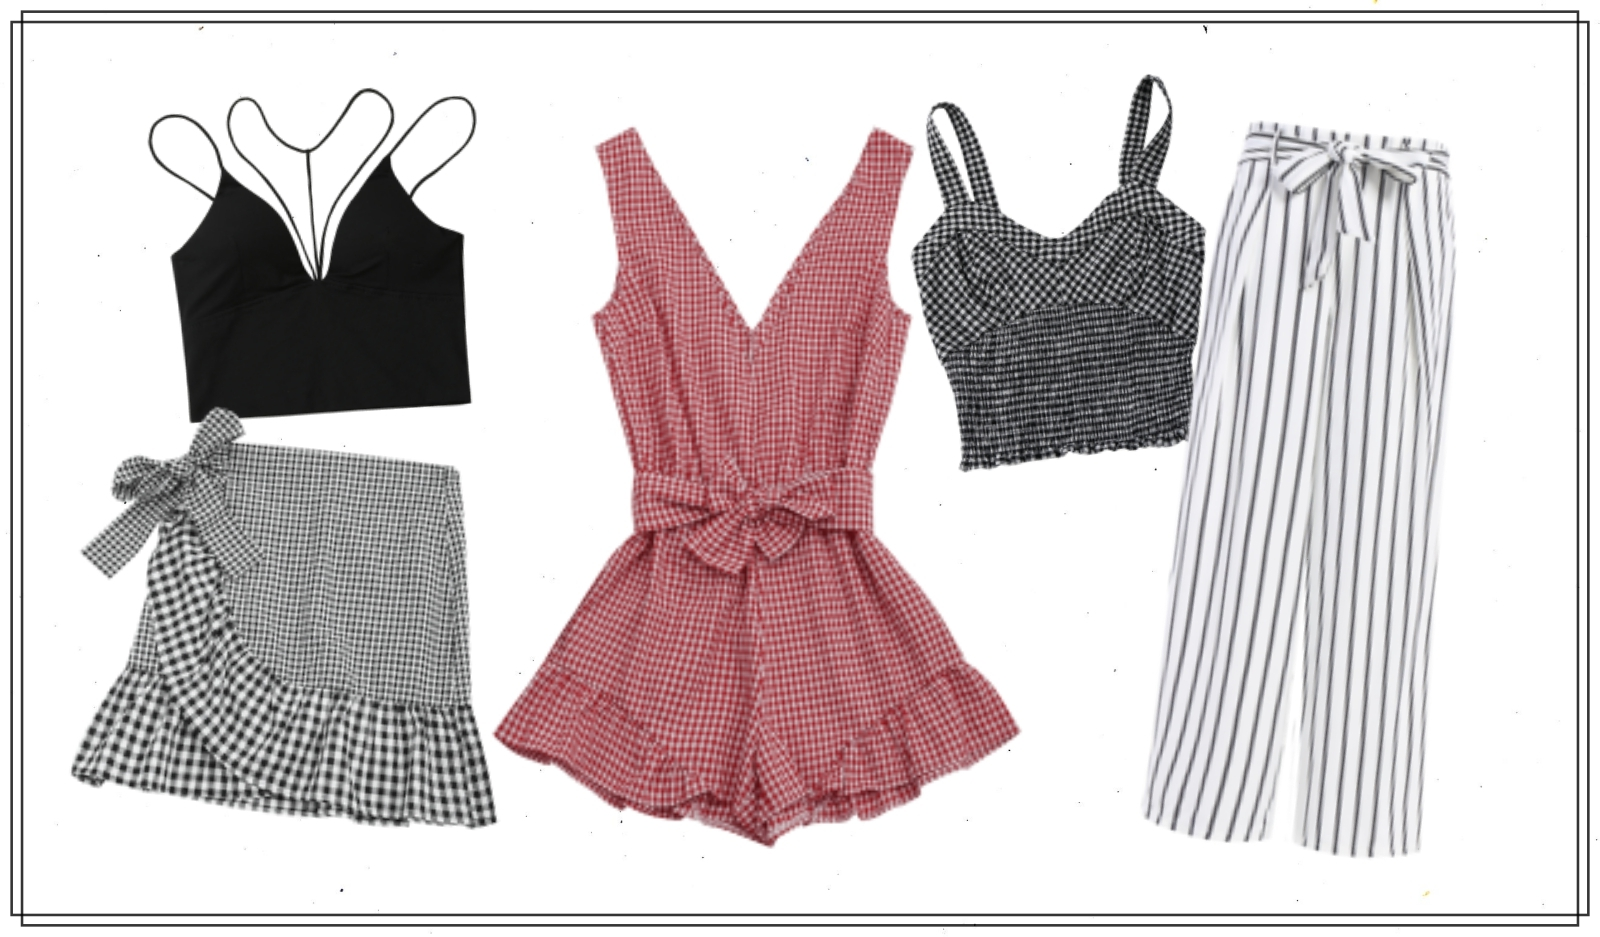 [tips] 3 ways to wear gingham or check patterns